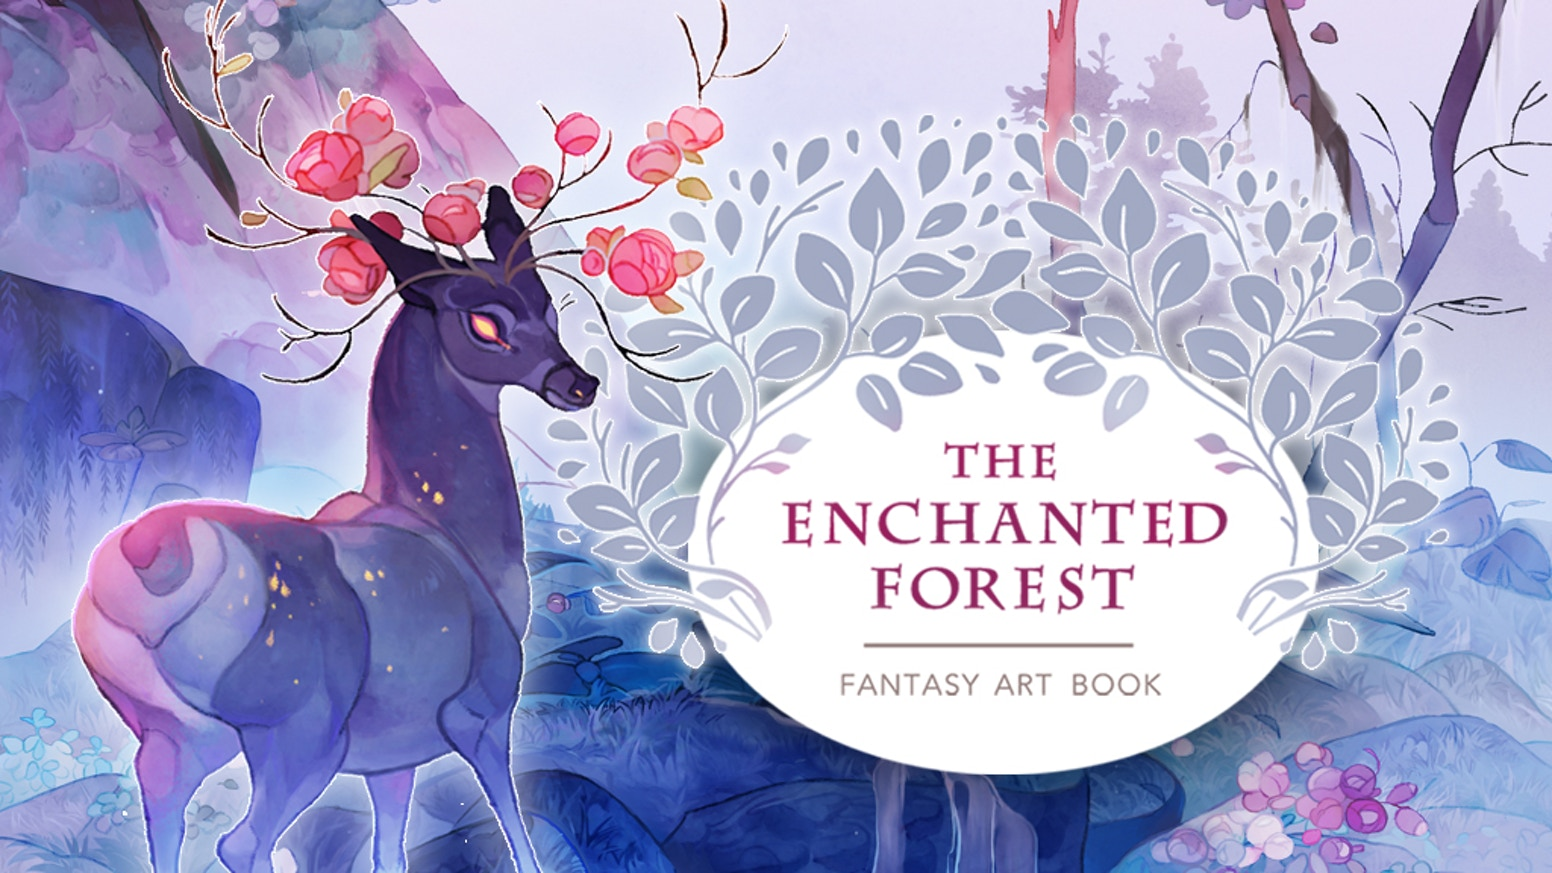 the enchanted forest fantasy art book by jodie snow kickstarter